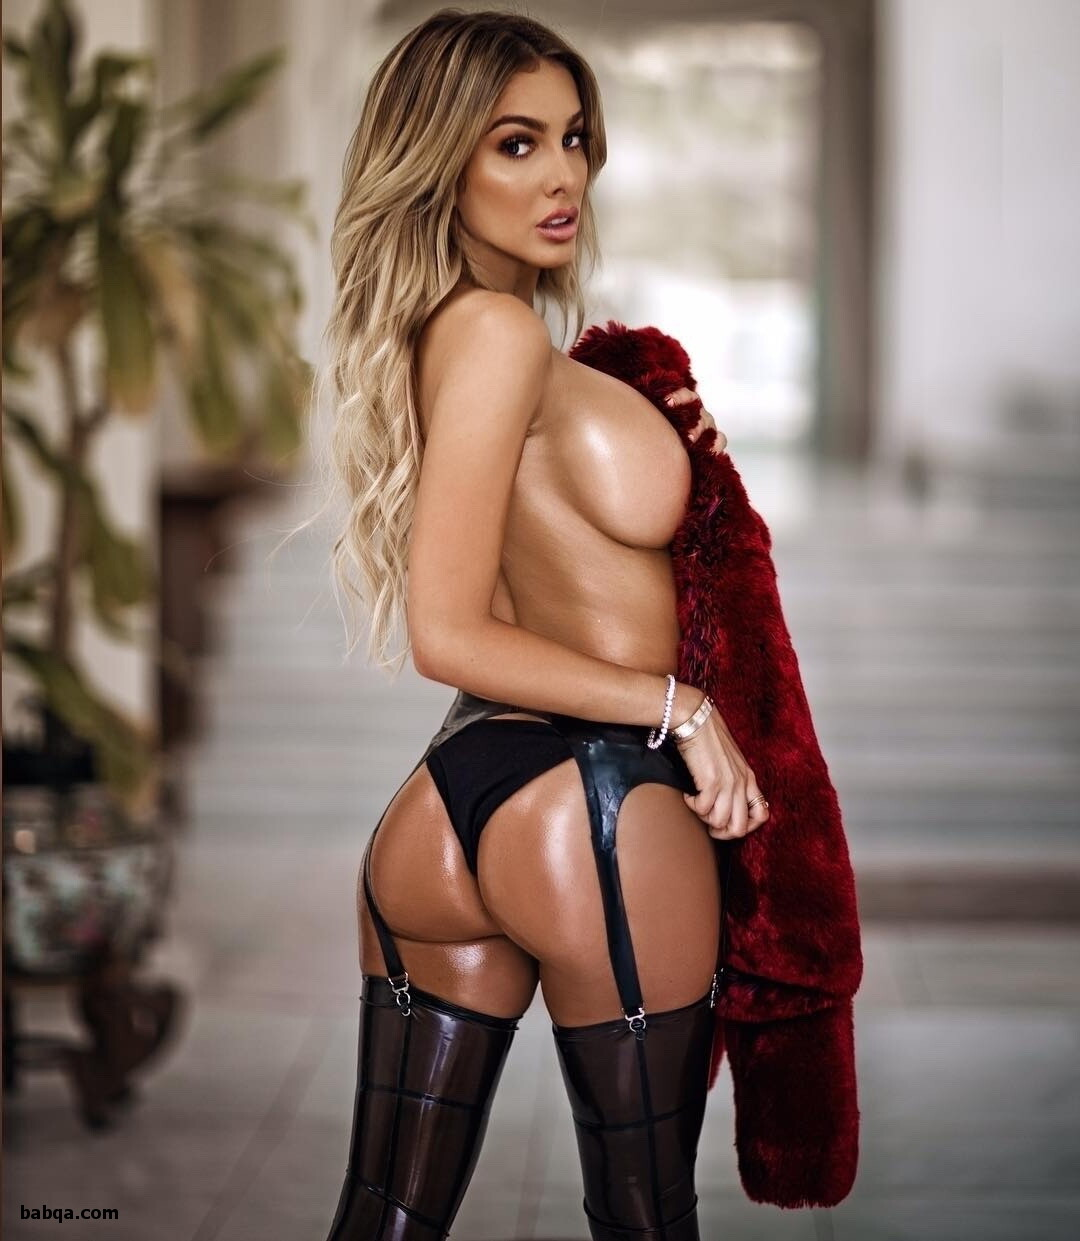 tumblr matures in stockings and sexy girl with stockings